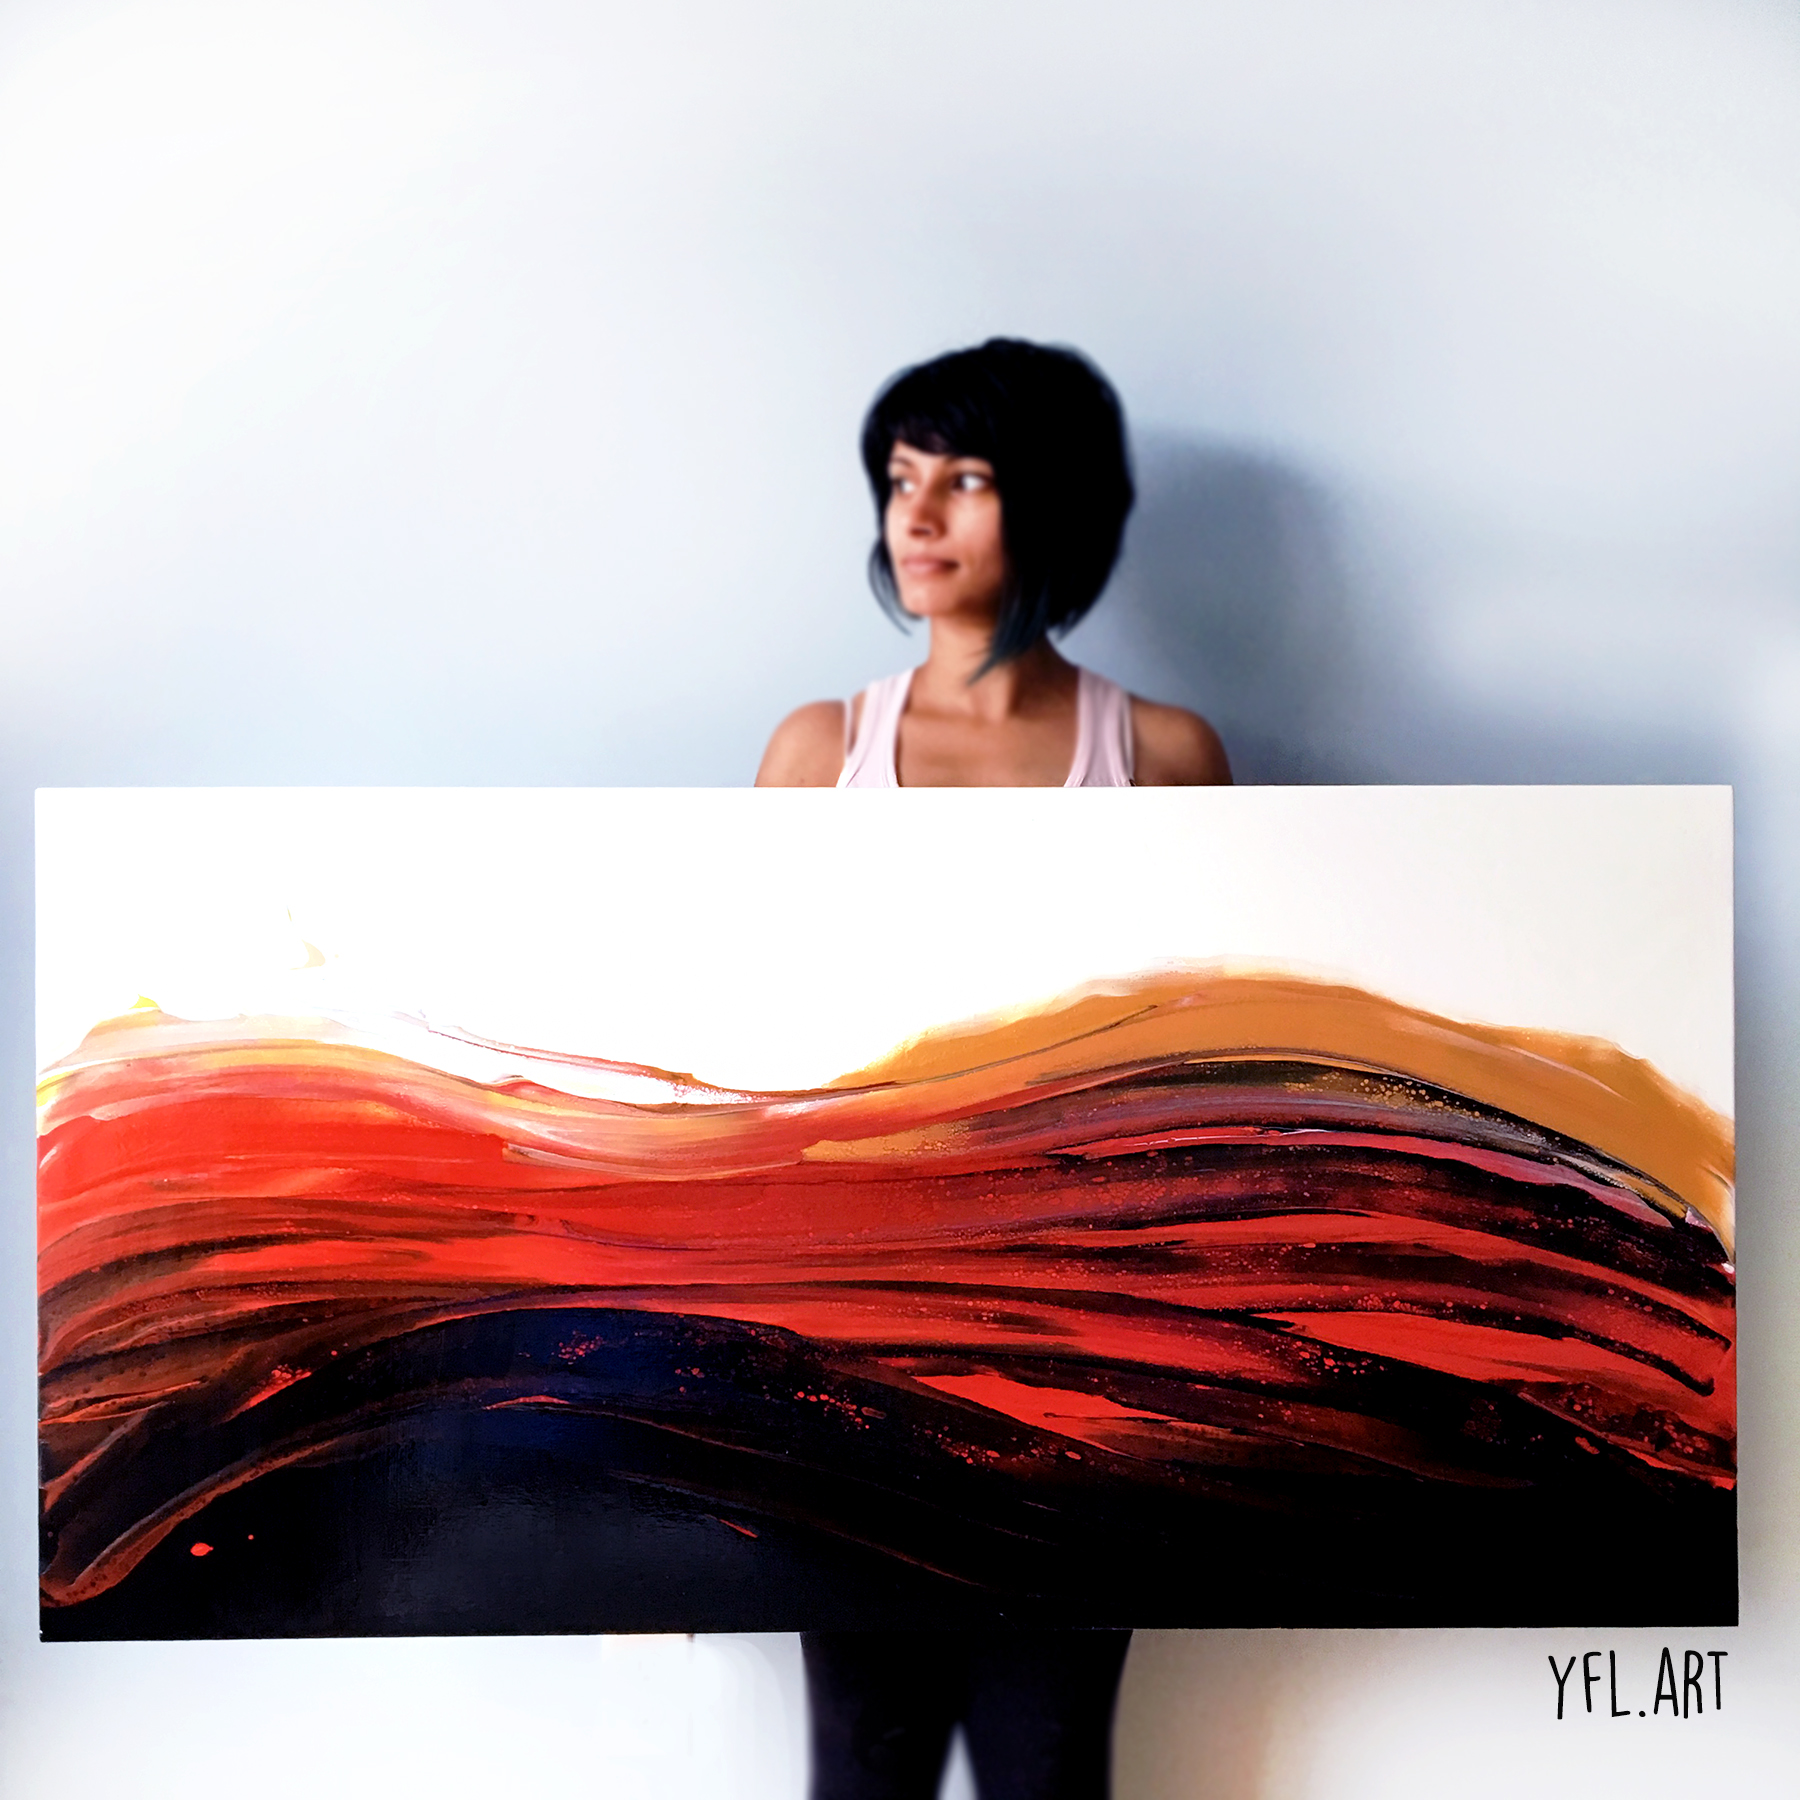 Turbulent - Fluid art  and resin - AVAILABLE- Contact to purchase- 24x48 inches